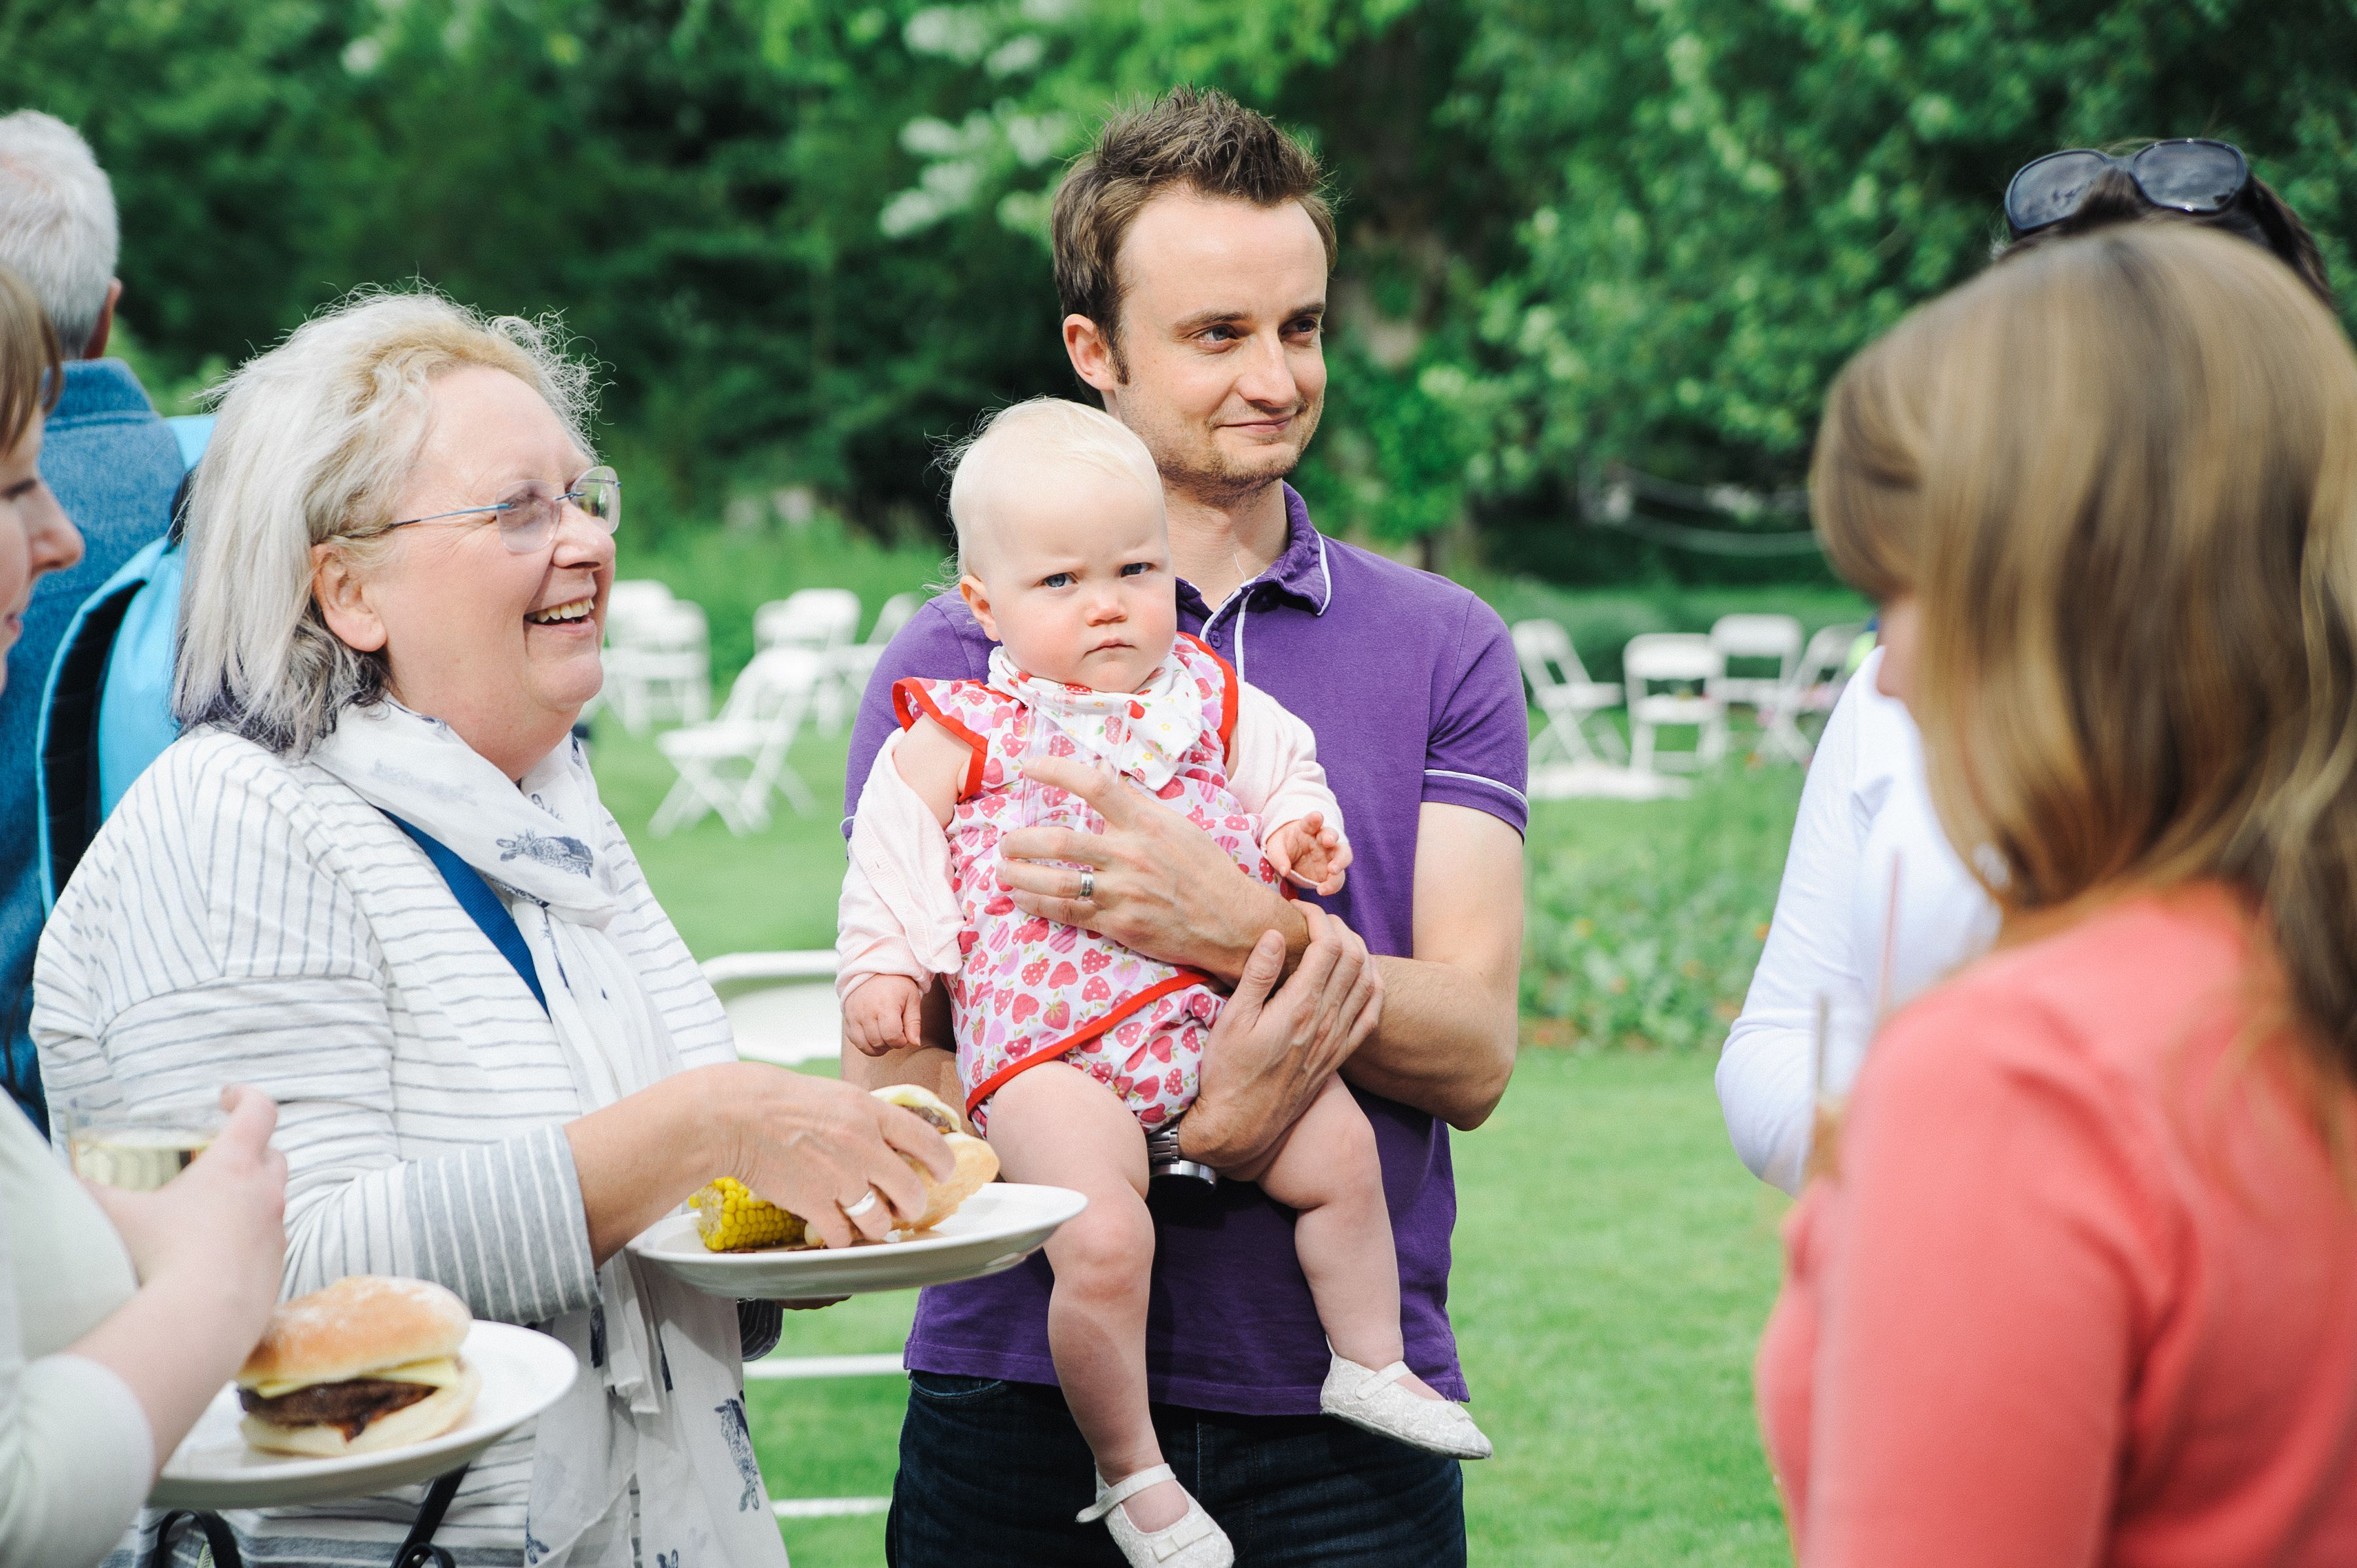 Senior Research Fellow James Sheppard describes how the department has supported him to progress his career while achieving a positive work–life balance through shared parental leave.